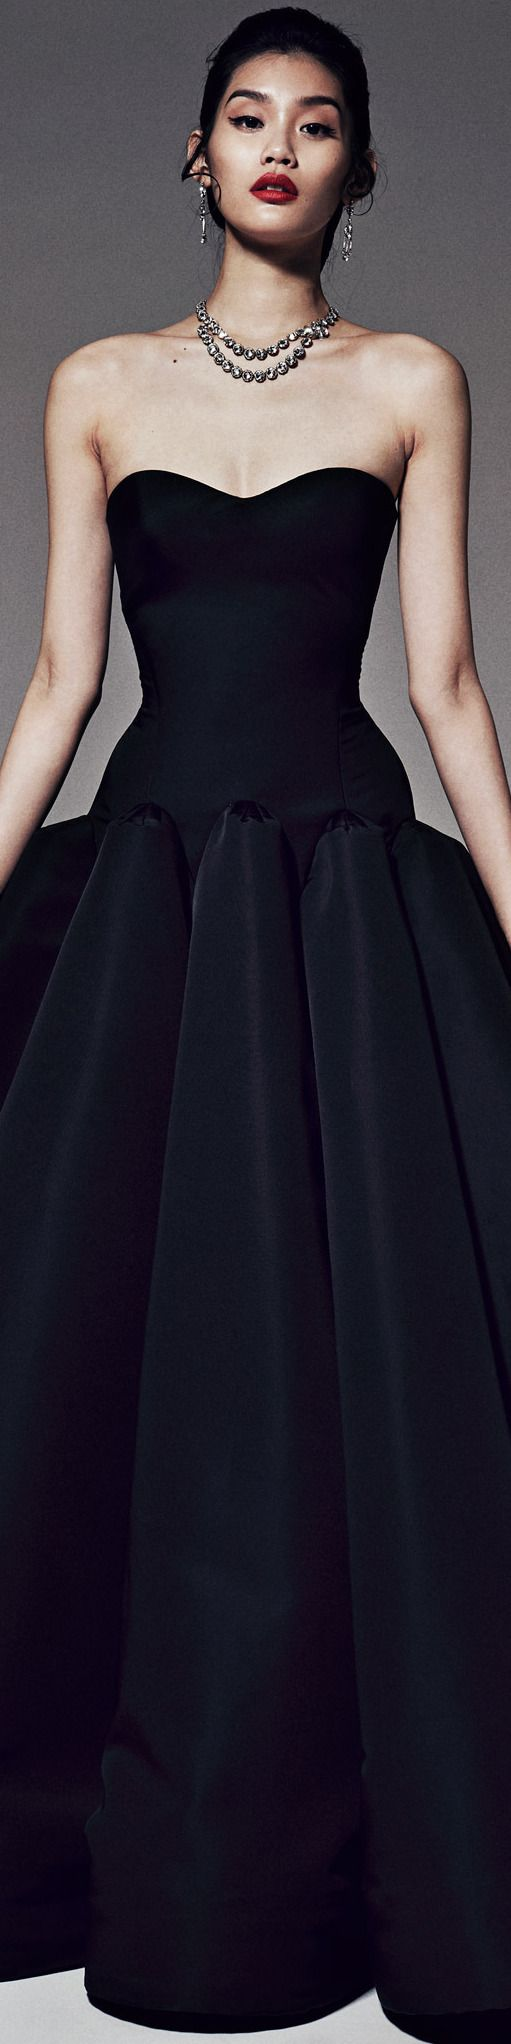 Zac Posen Pre-Fall 2014 same as Sophia Vergara wore to the Golden Globes